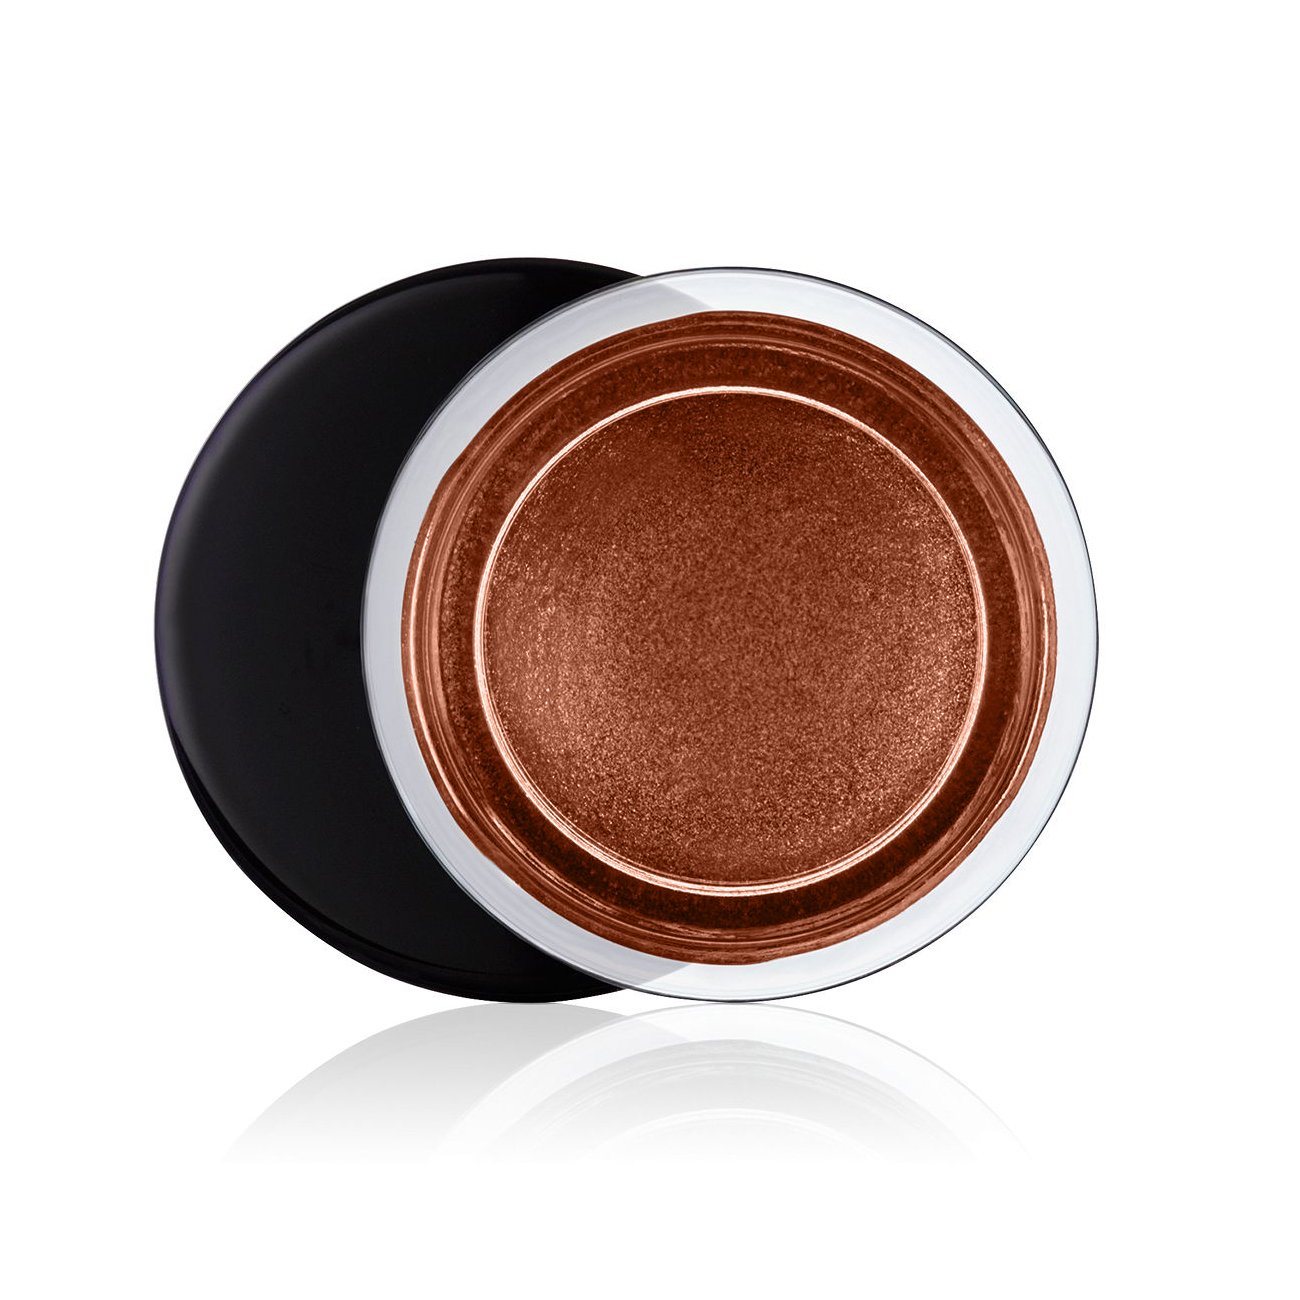 Estee Lauder Pure Color Stay on Shadow Paint COSMIC